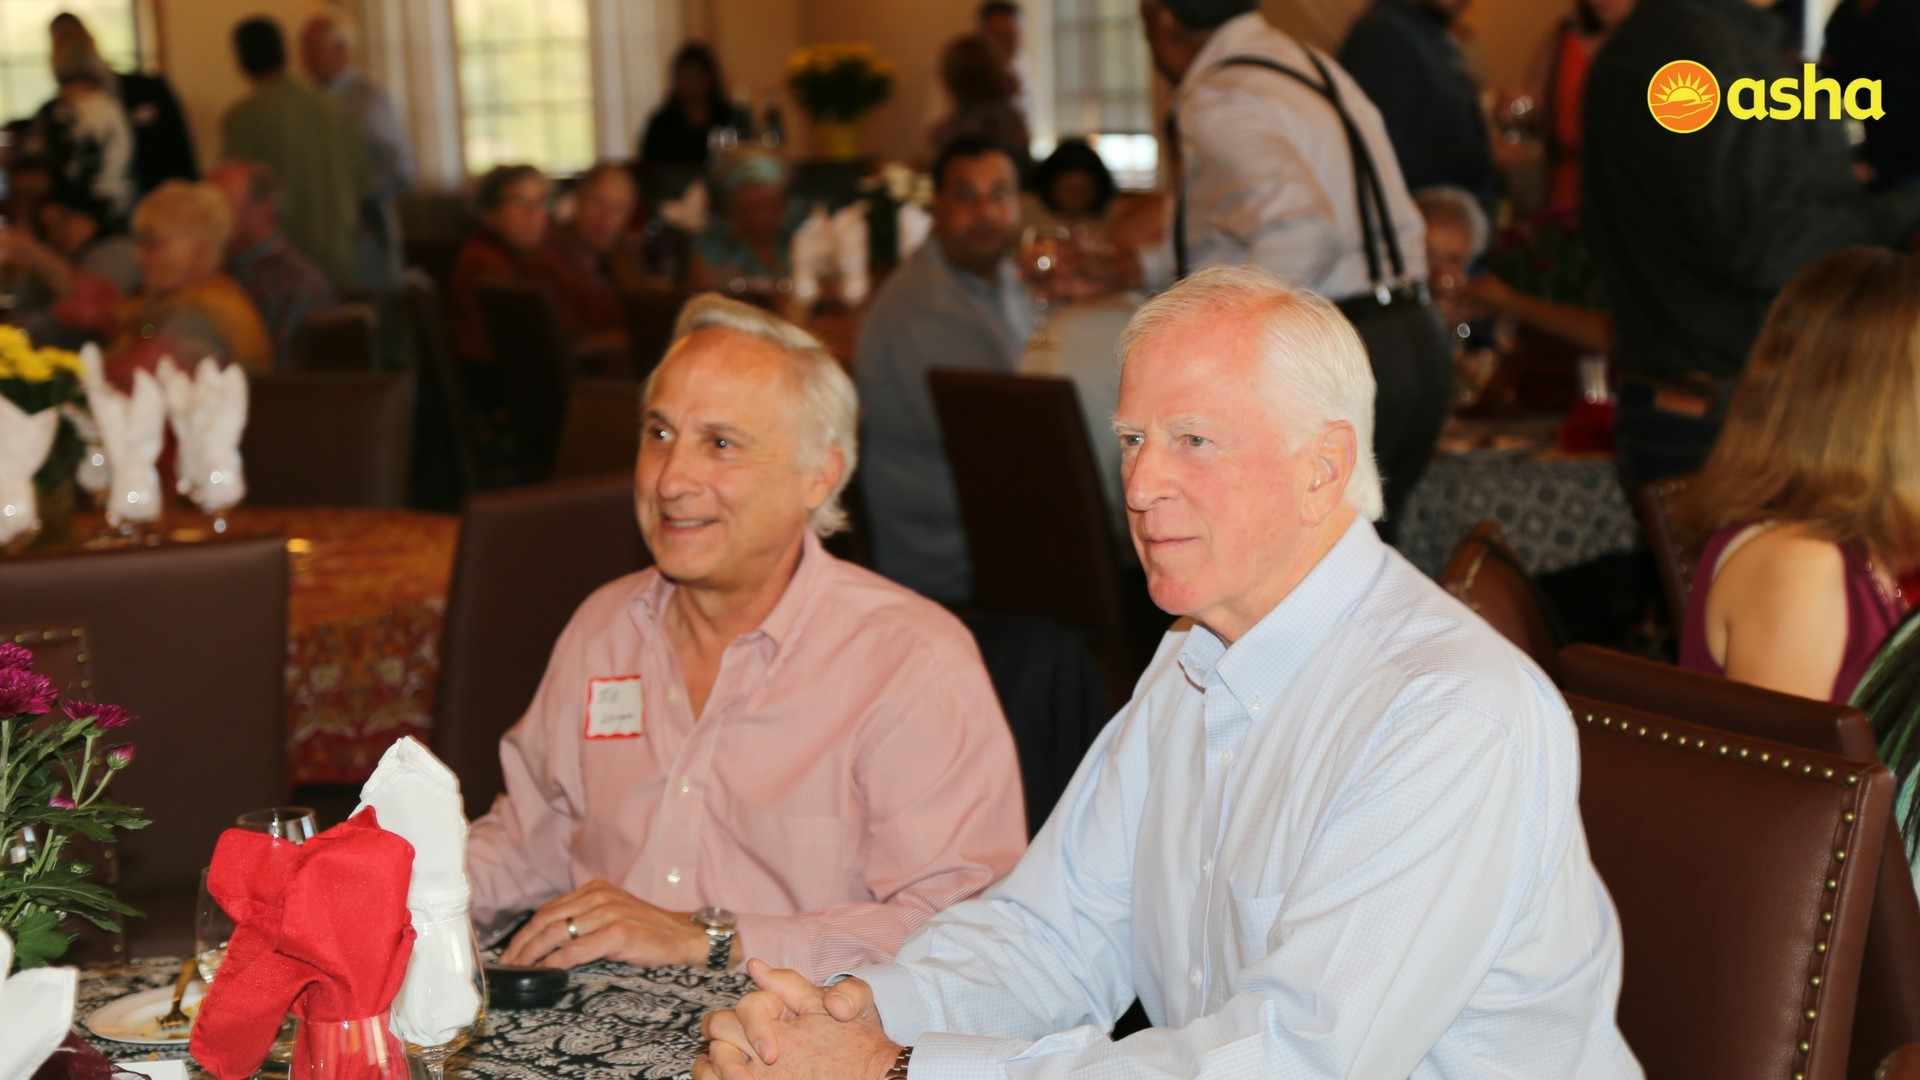 William Leigon, owner of Jamieson Ranch with Congressman Mike Thompson.